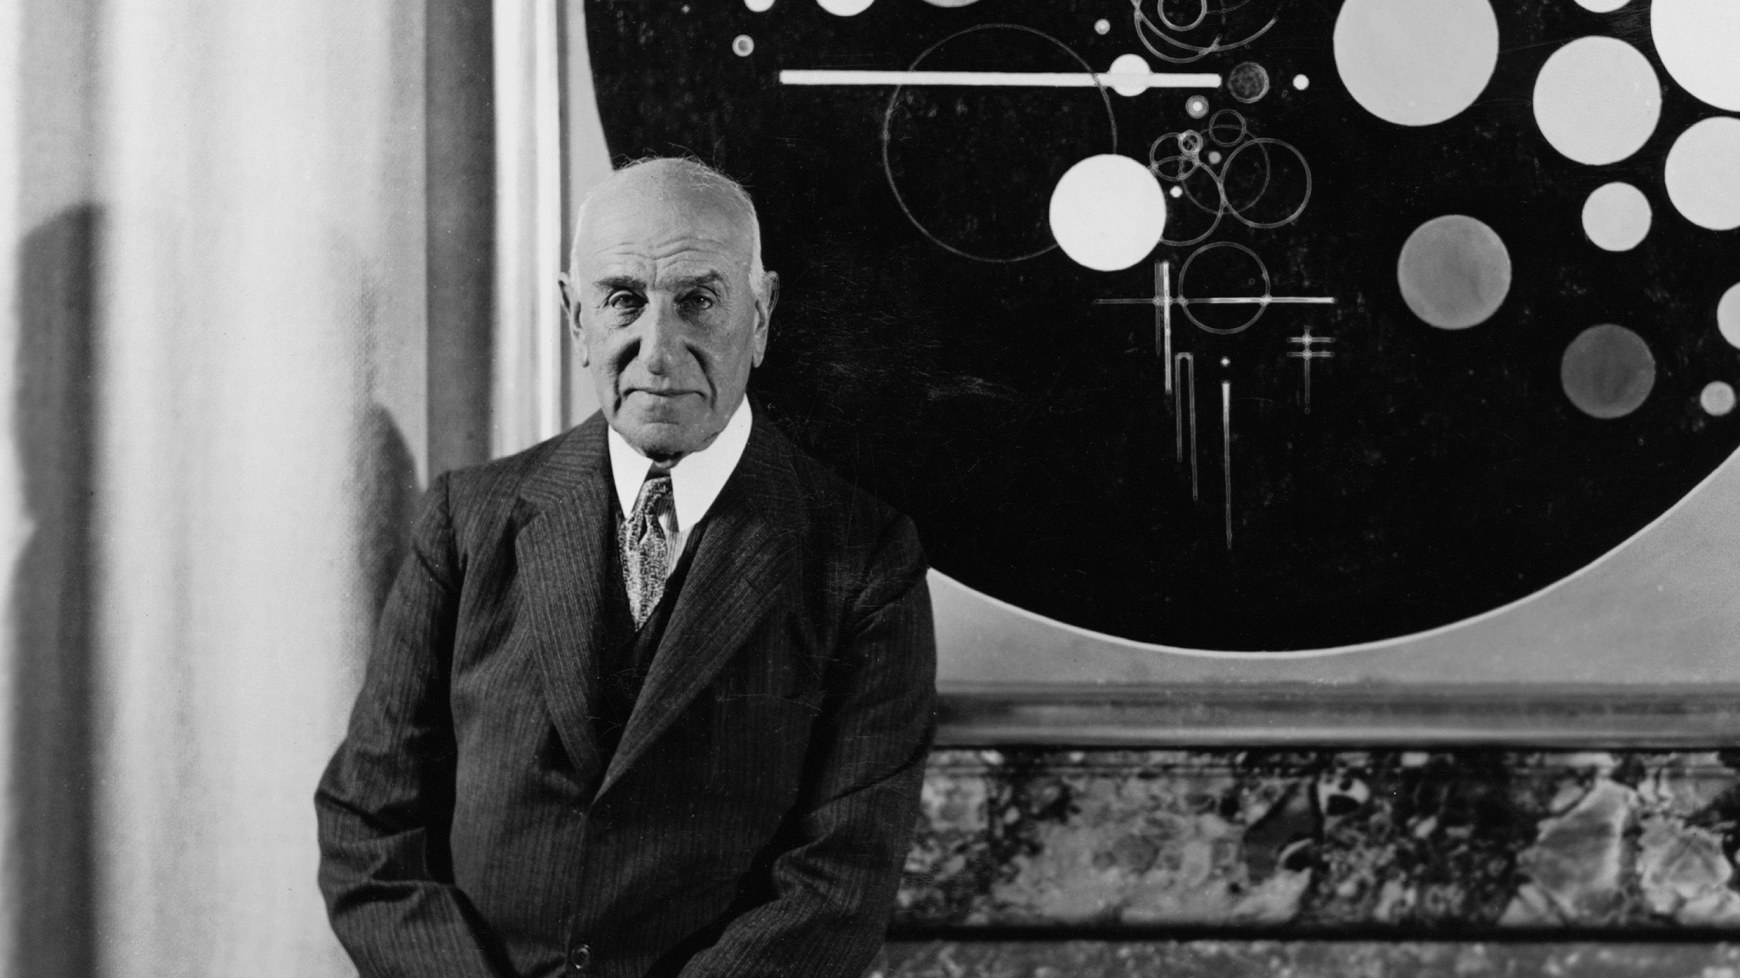 Mr Solomon Guggenheim, the patron of the arts that kicked this whole movement off, photo from  Guggenheim